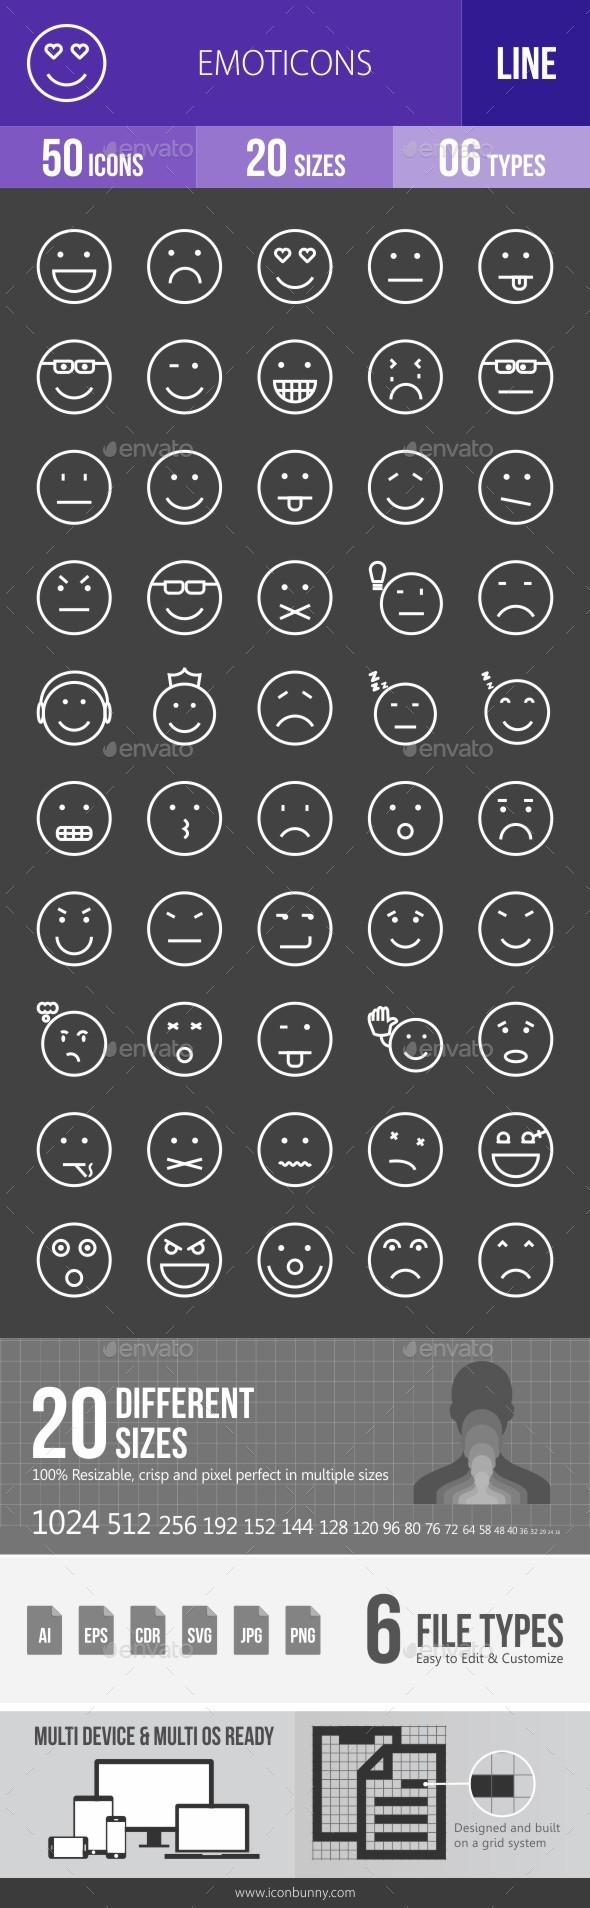 Emoticons Line Inverted Icons - Icons